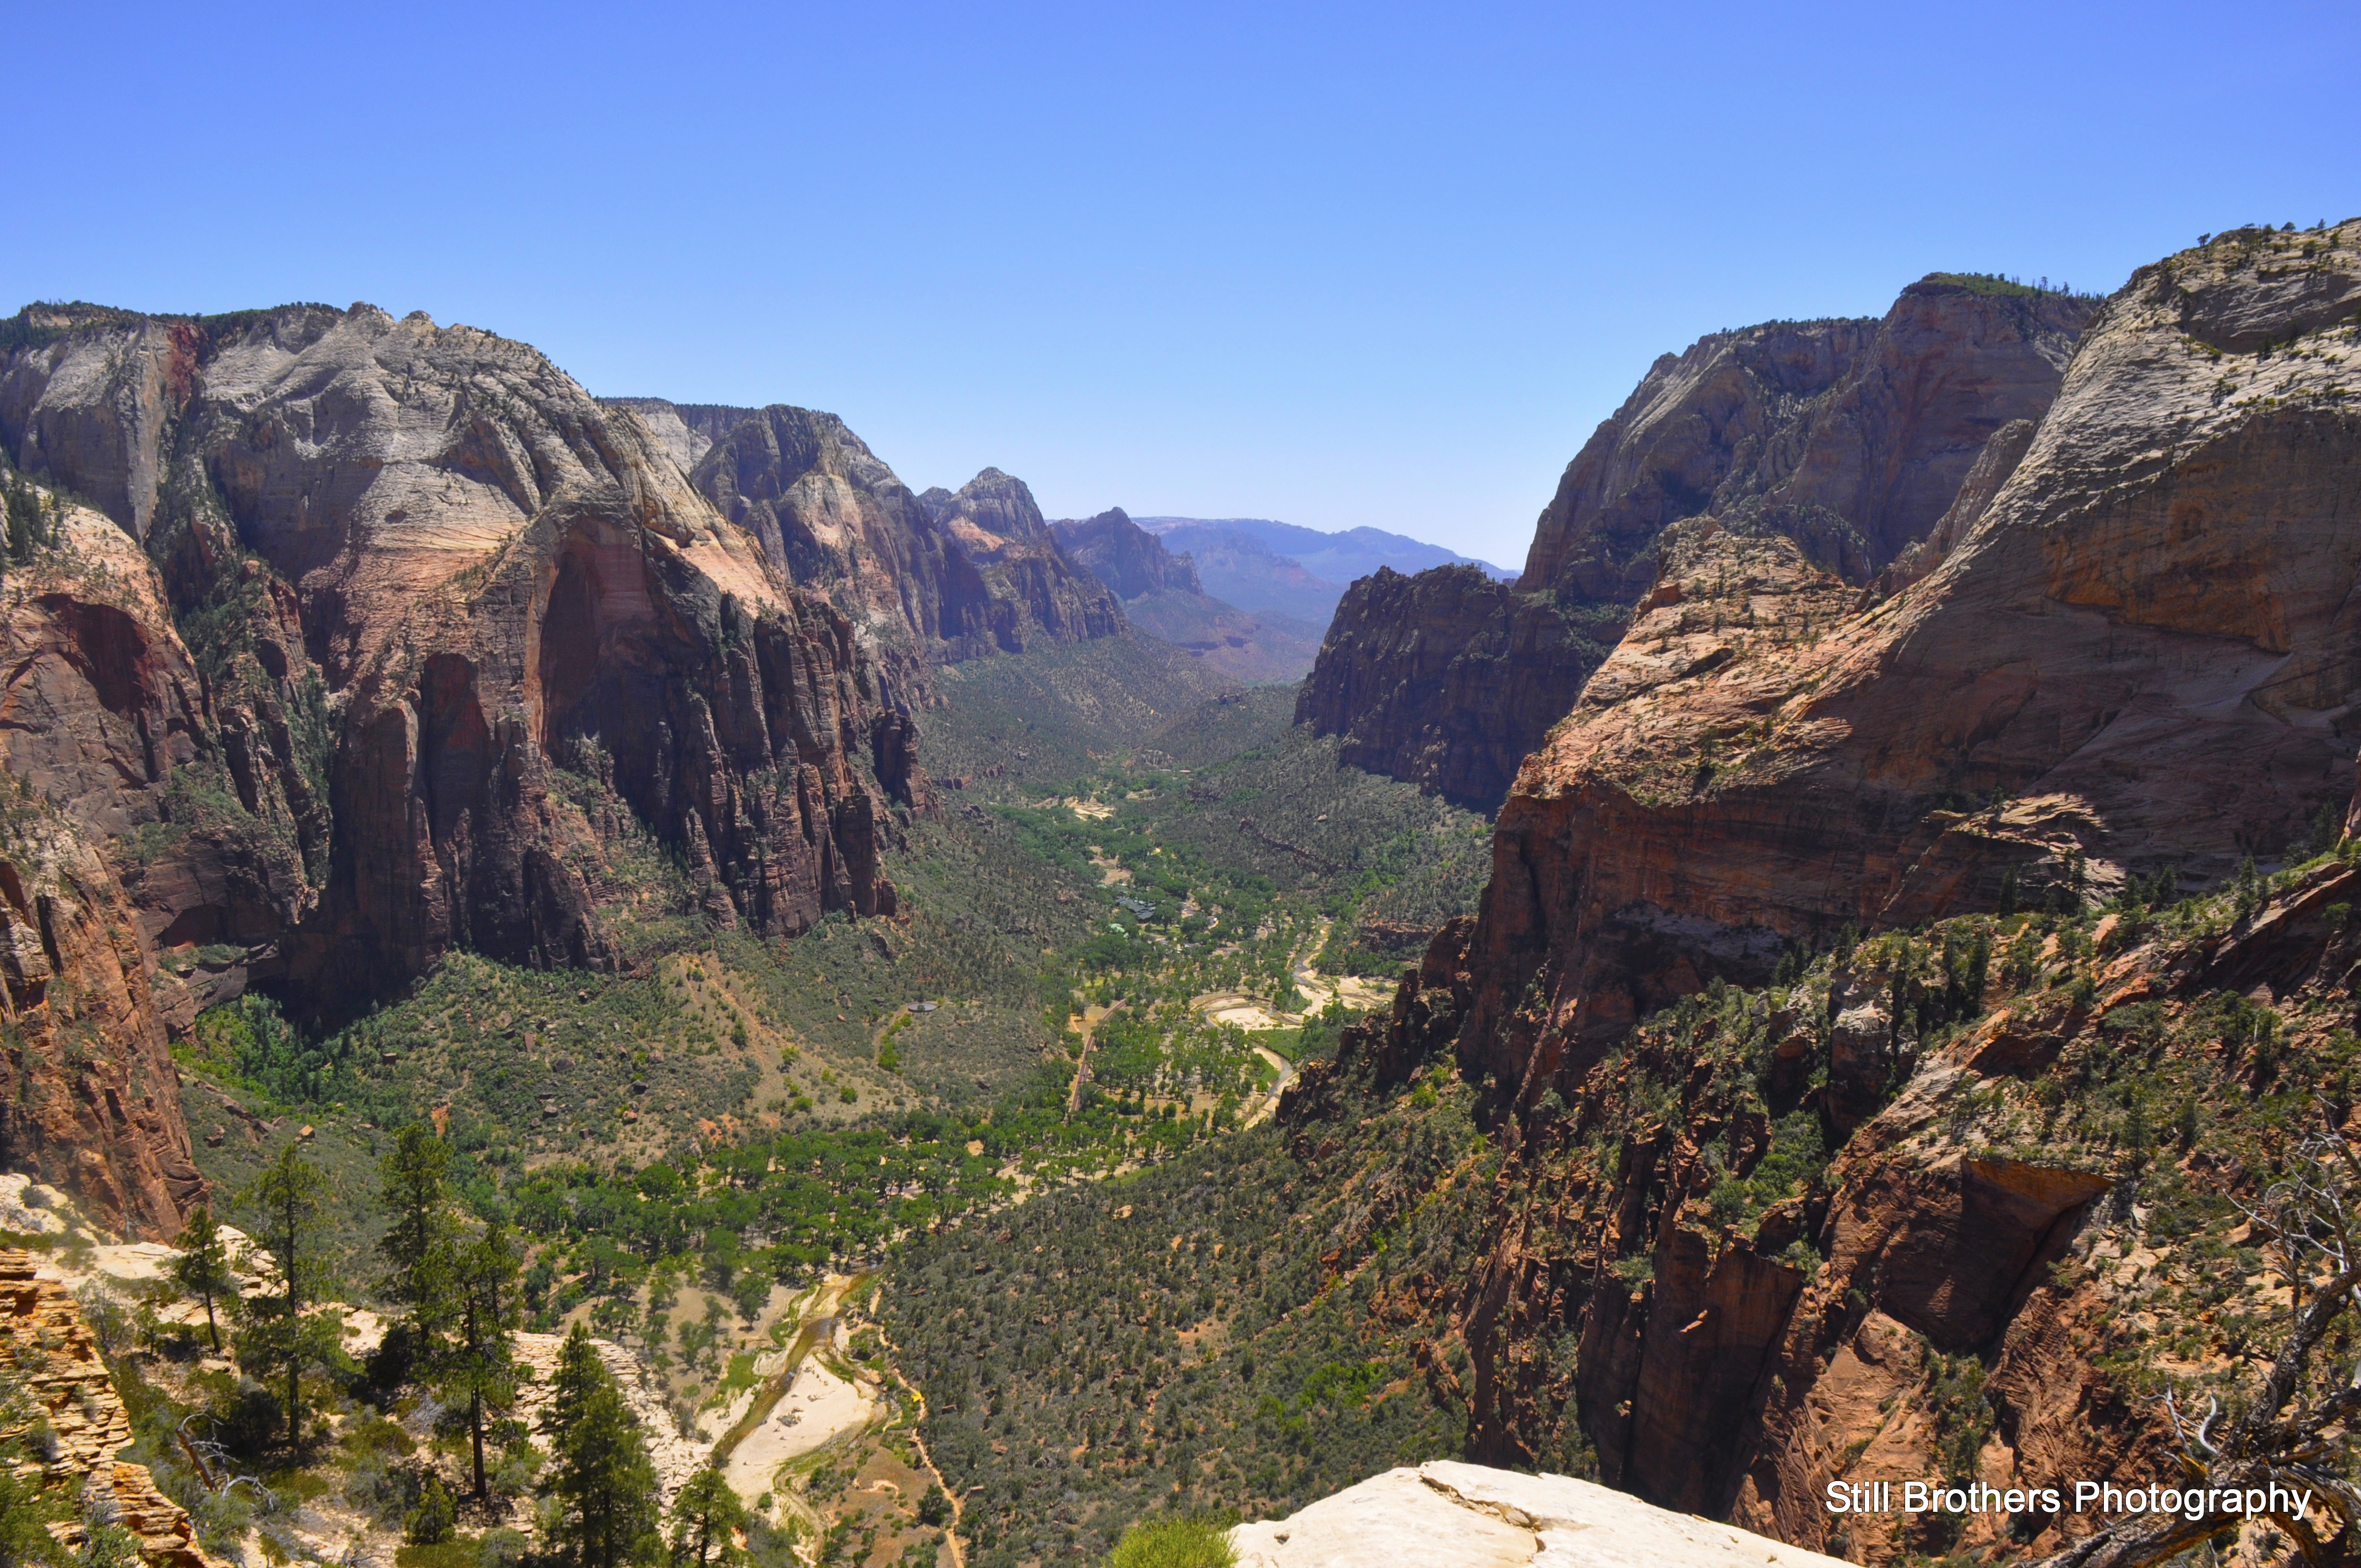 Permalink to: Backpacking in the Southwest